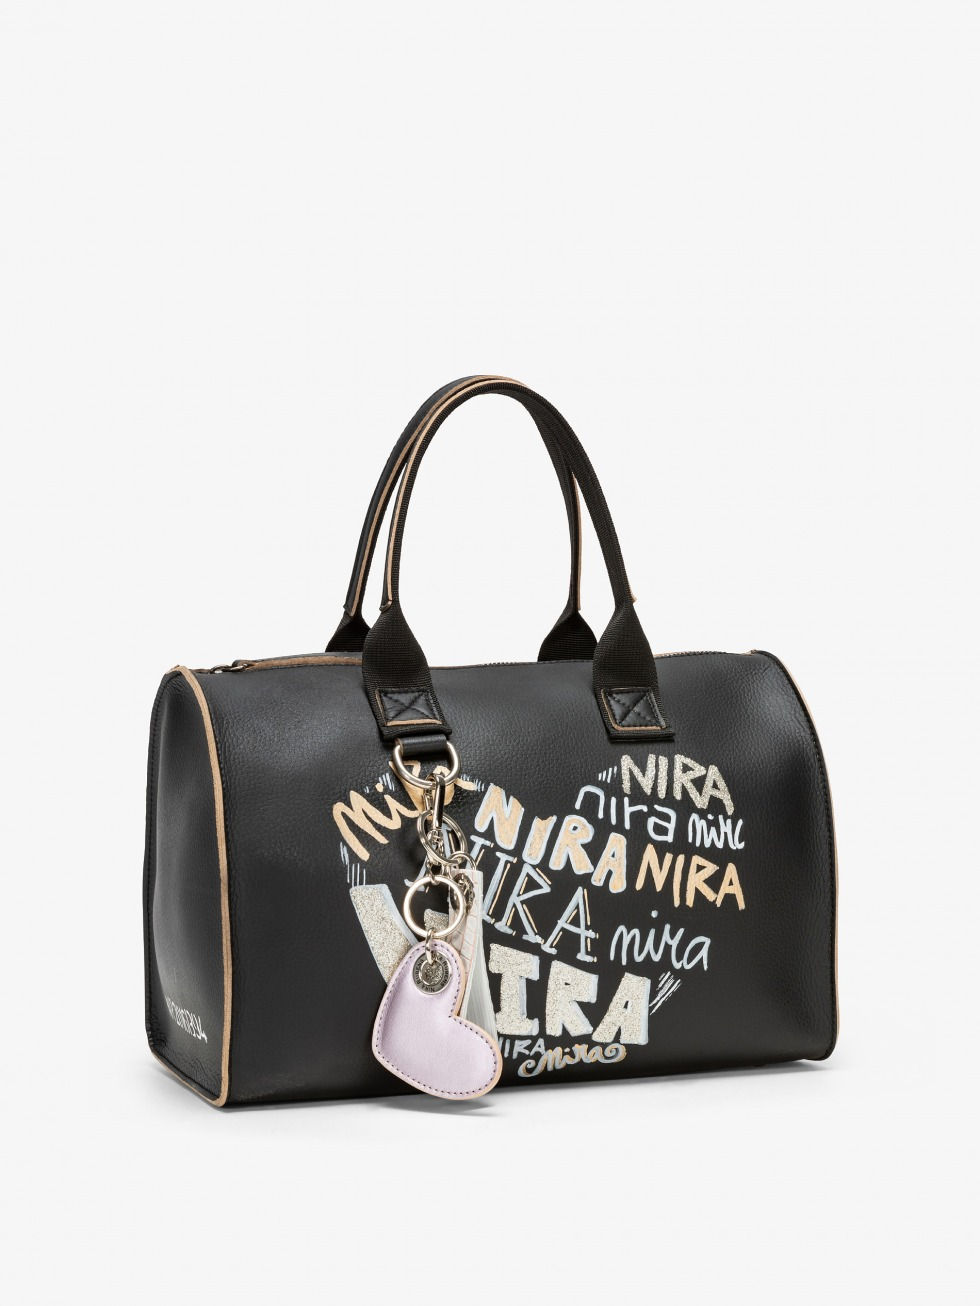 Easy Bag - Nira Gold